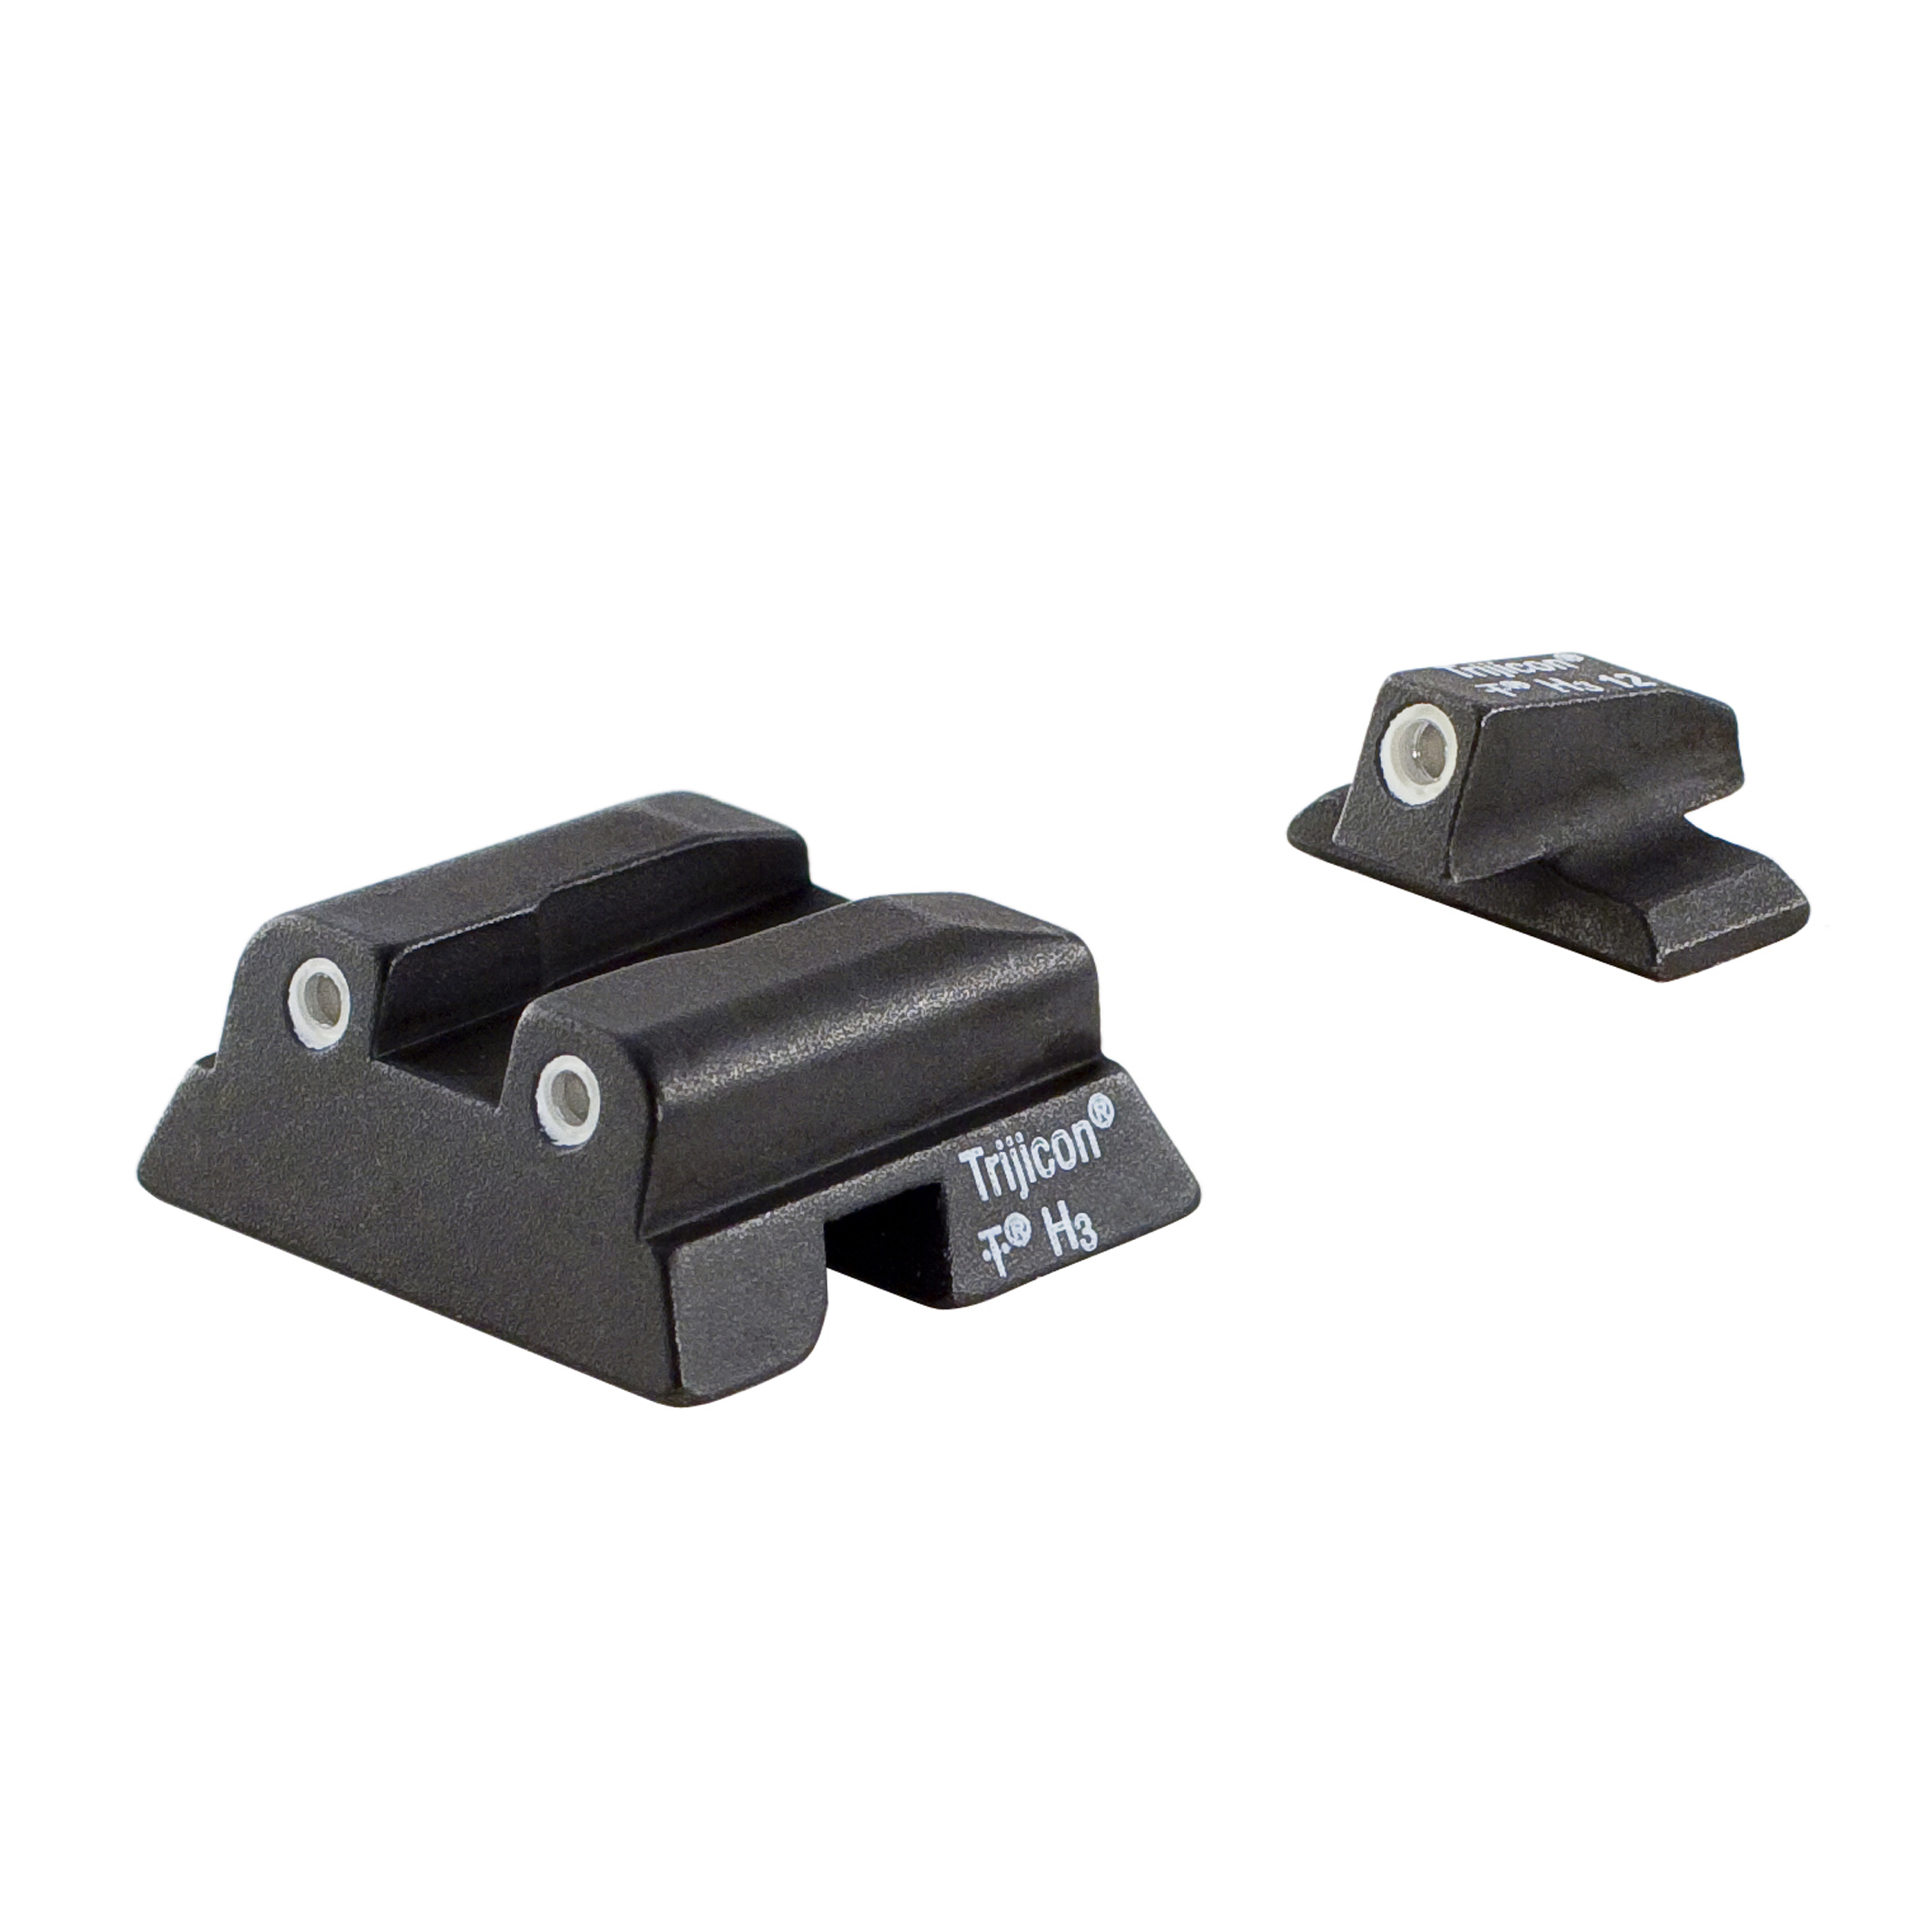 Trijicon Beretta HD Night Sight Set PX4 (Excluding PX4 Storm Compact), Orange Front Outline Lamp by Trijicon